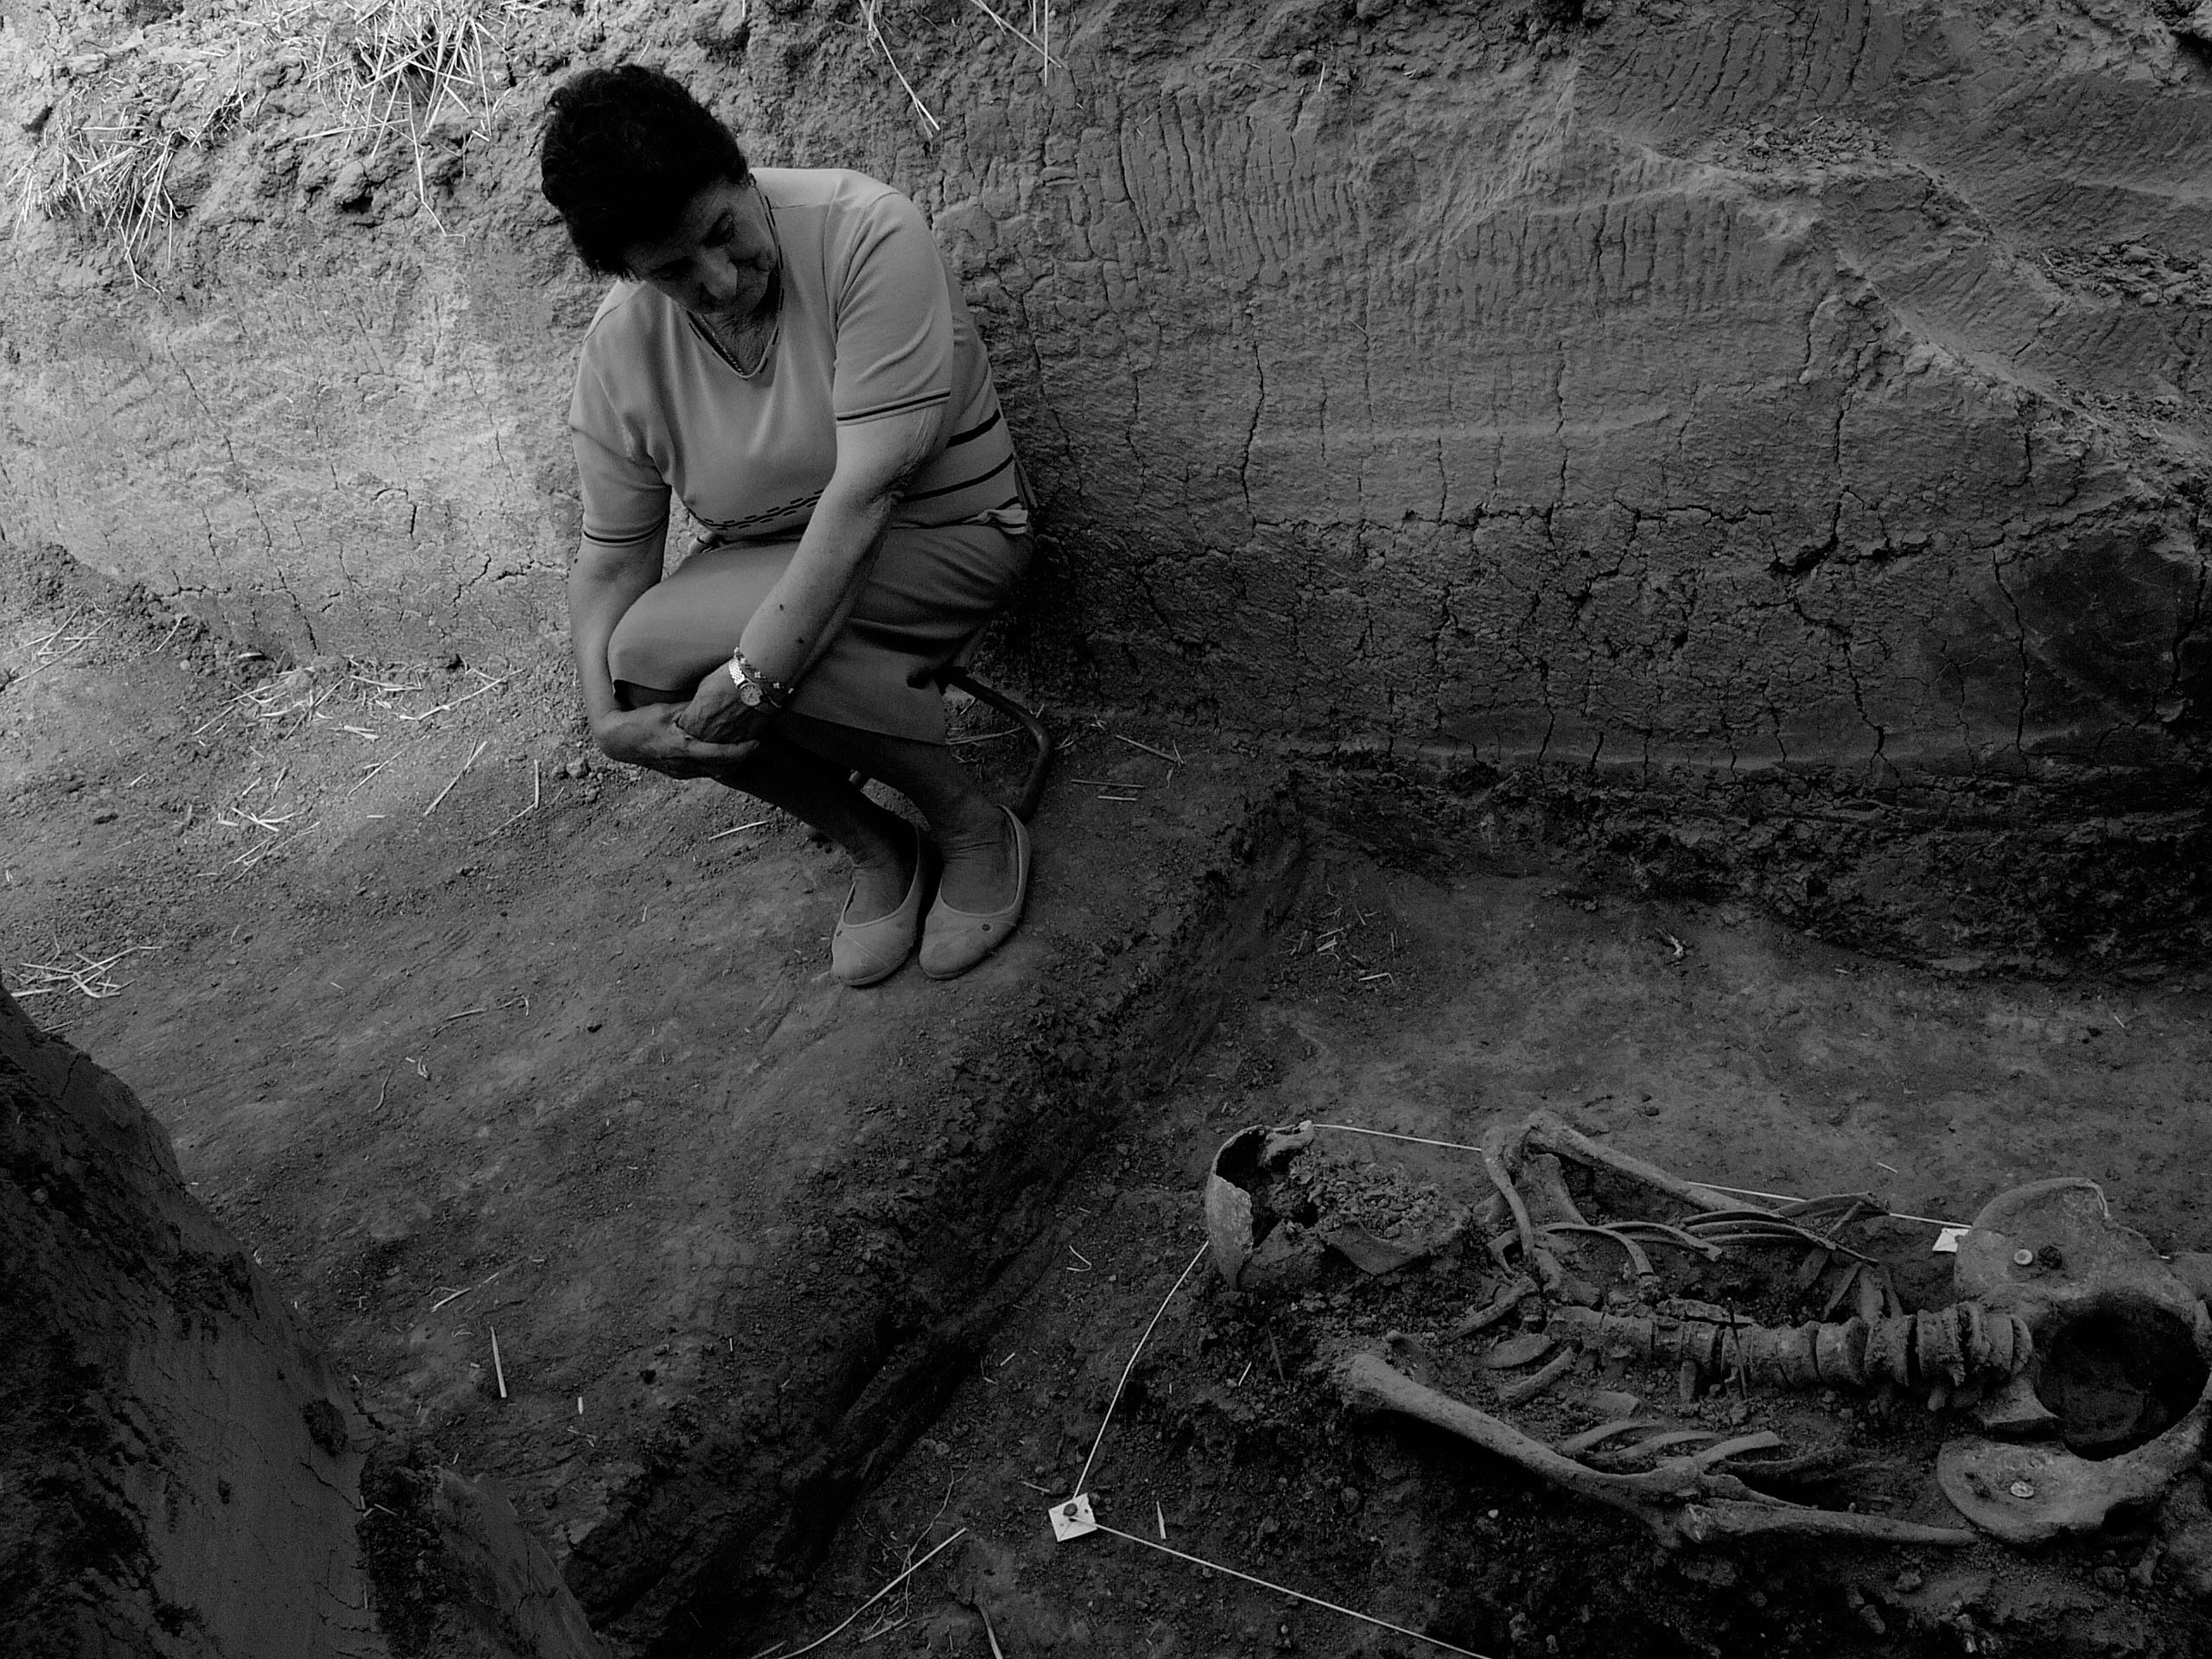 Berlangas de Roa (Burgos), 2004. Exhumation of the remains of five inhabitants of Haza (Burgos) who were detained and assassinated in August 1936, among them the mayor of the town. The mayor's daughter sits beside her father's remains. Photo Clemente Bernad. From Desvelados.